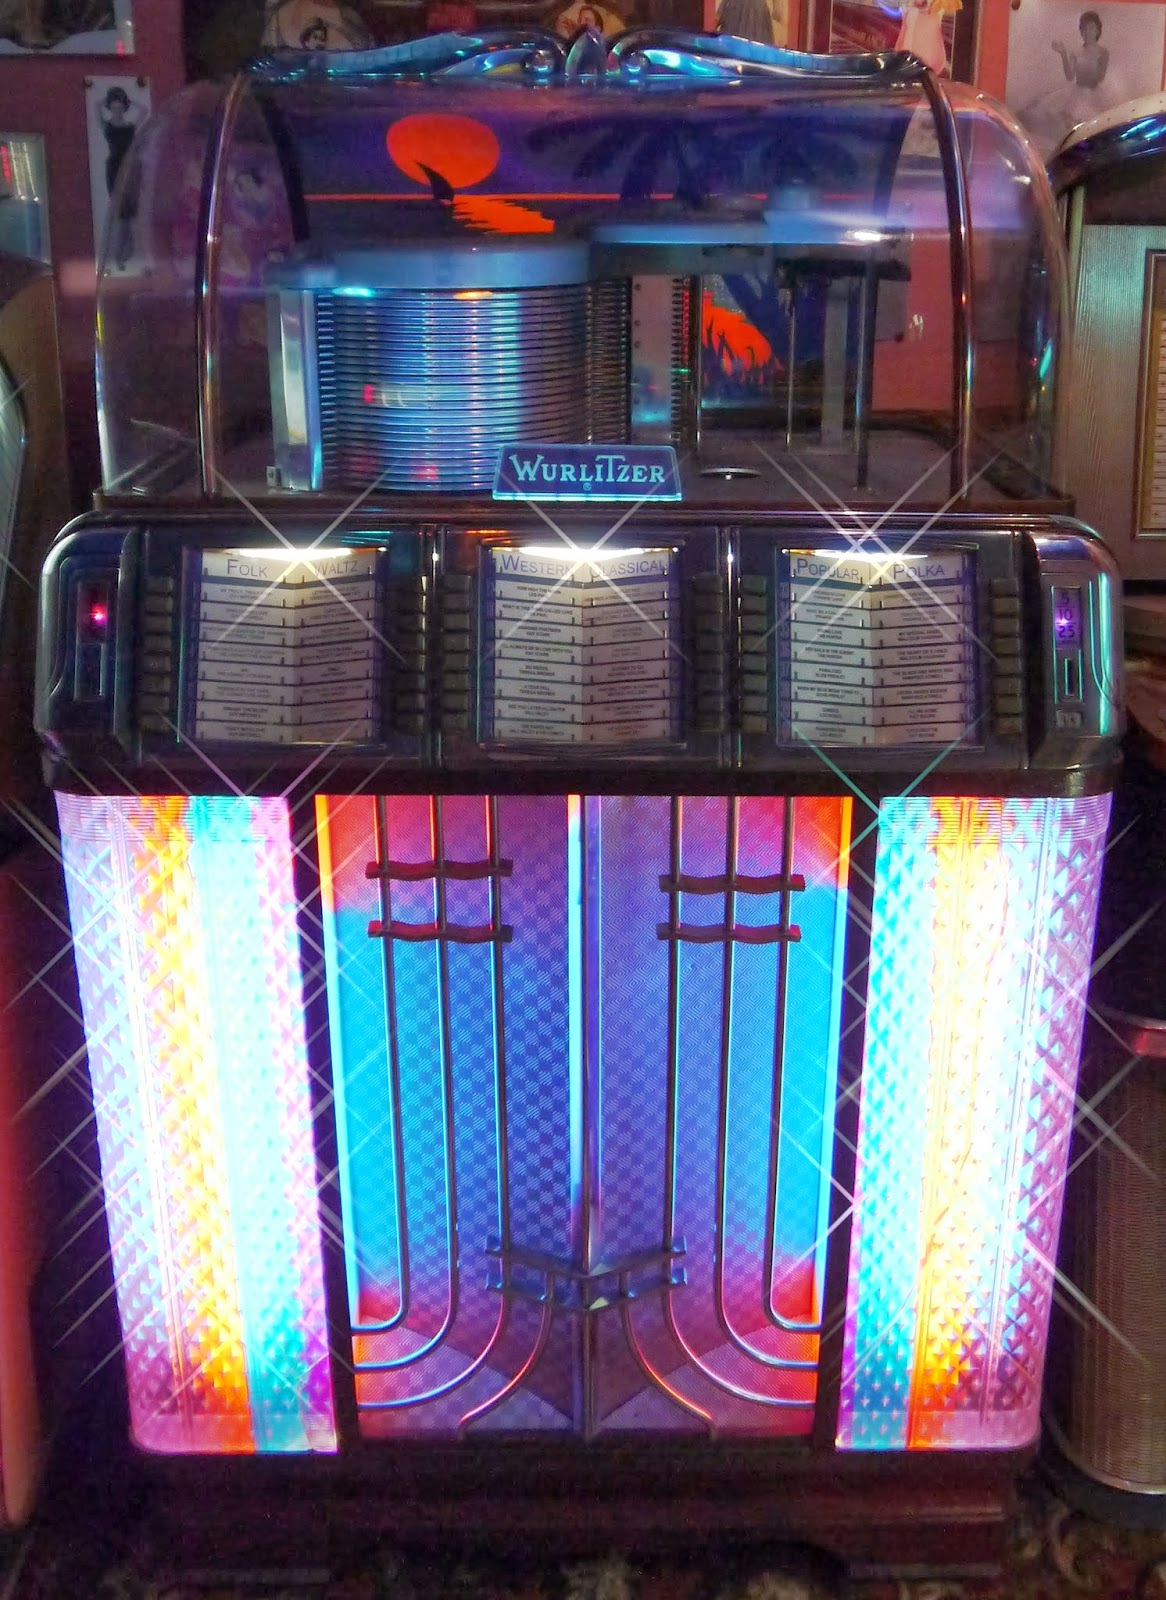 'Wurlitzer 1400' 1951 Jukebox